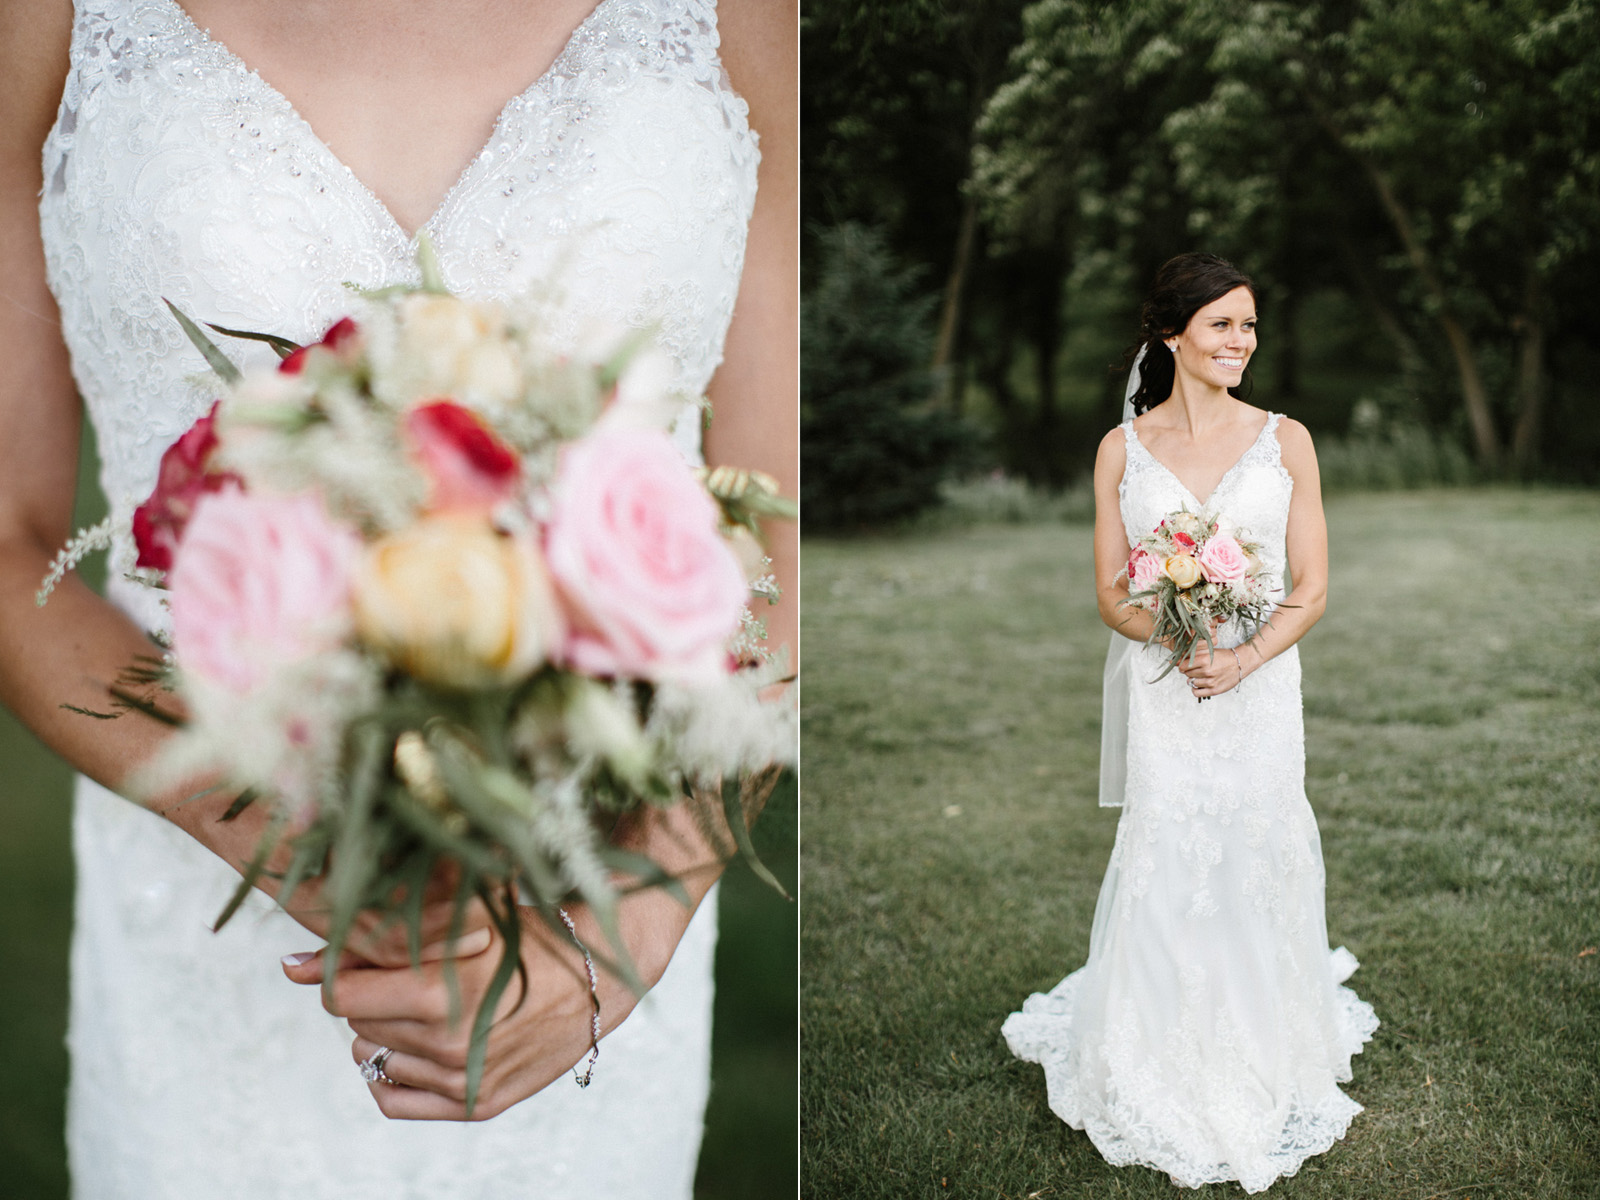 Outdoor_Wedding_SiouxFalls_MaryJoWegnerArboretum_Photographer_Calli&Jon_113.jpg